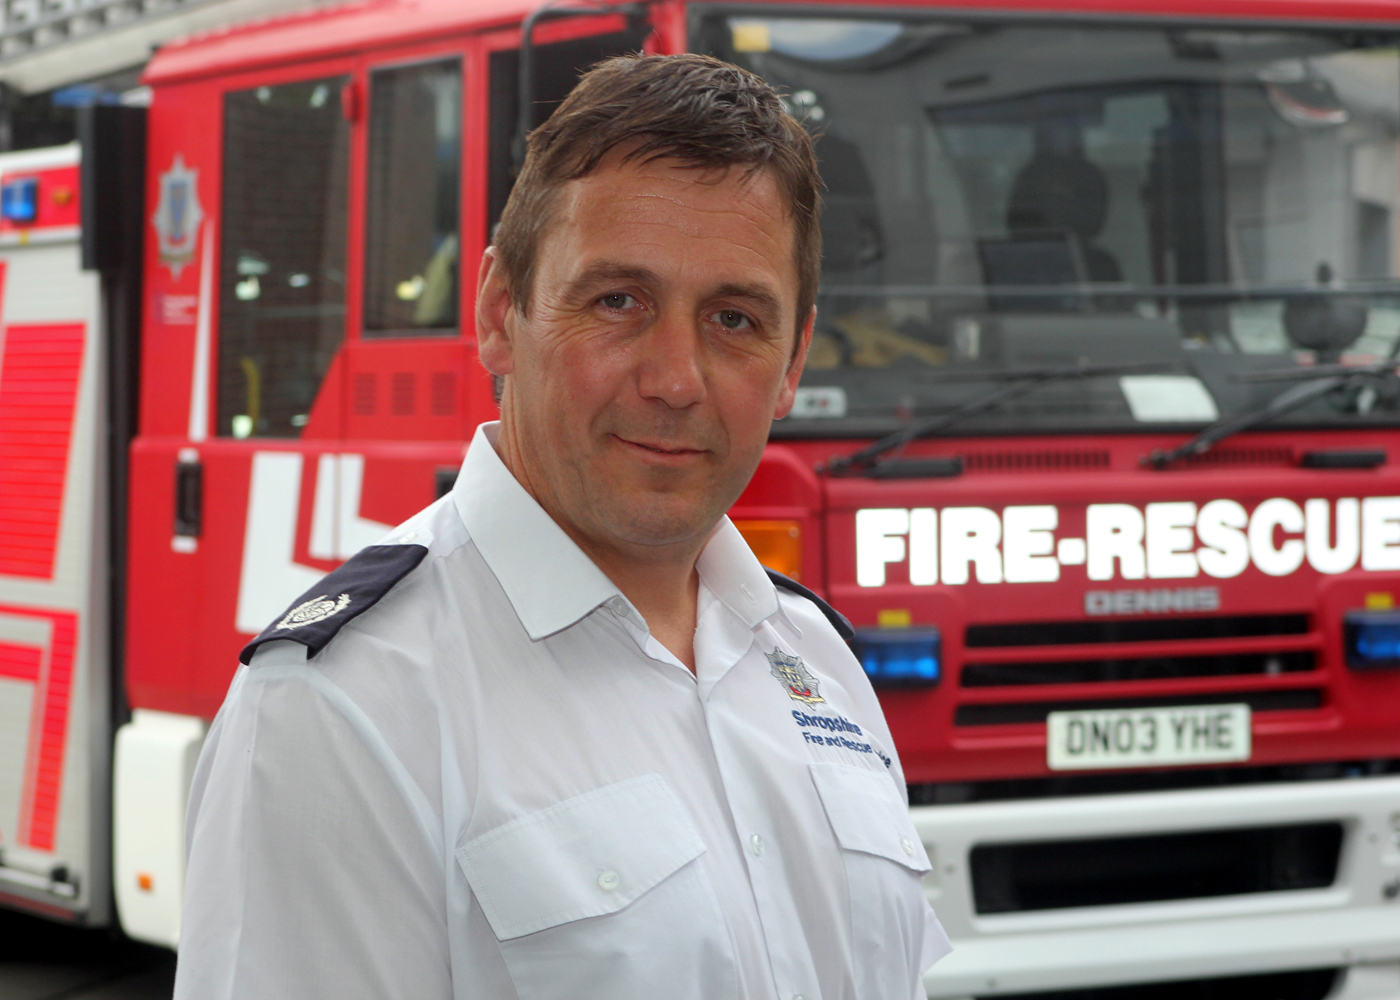 Group Commander Neil Griffiths who worked to set up Fes in Shropshire